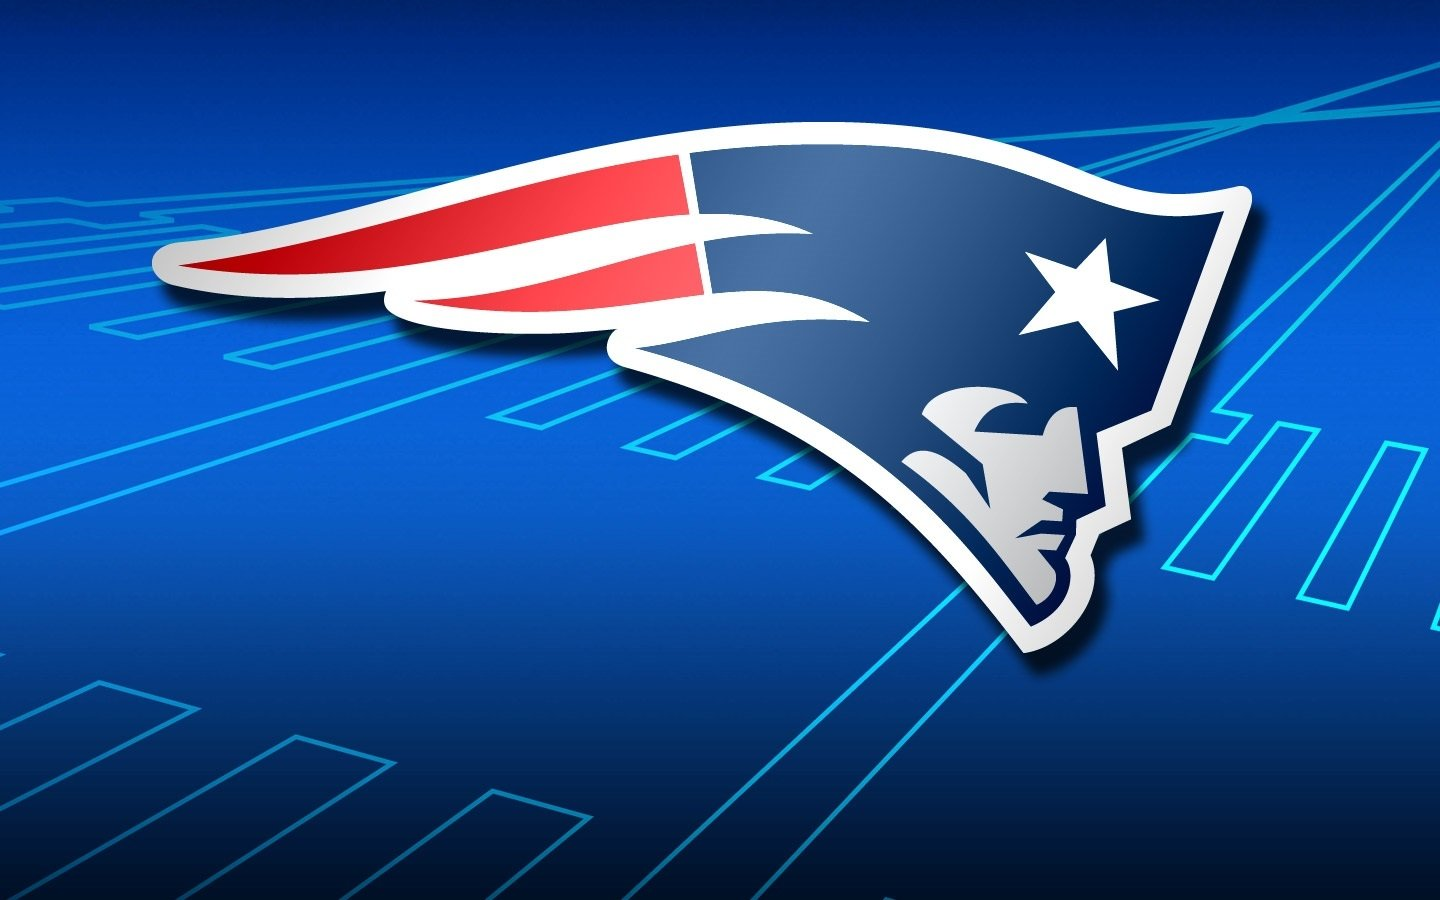 63 New England Patriots Hd Wallpapers Background Images